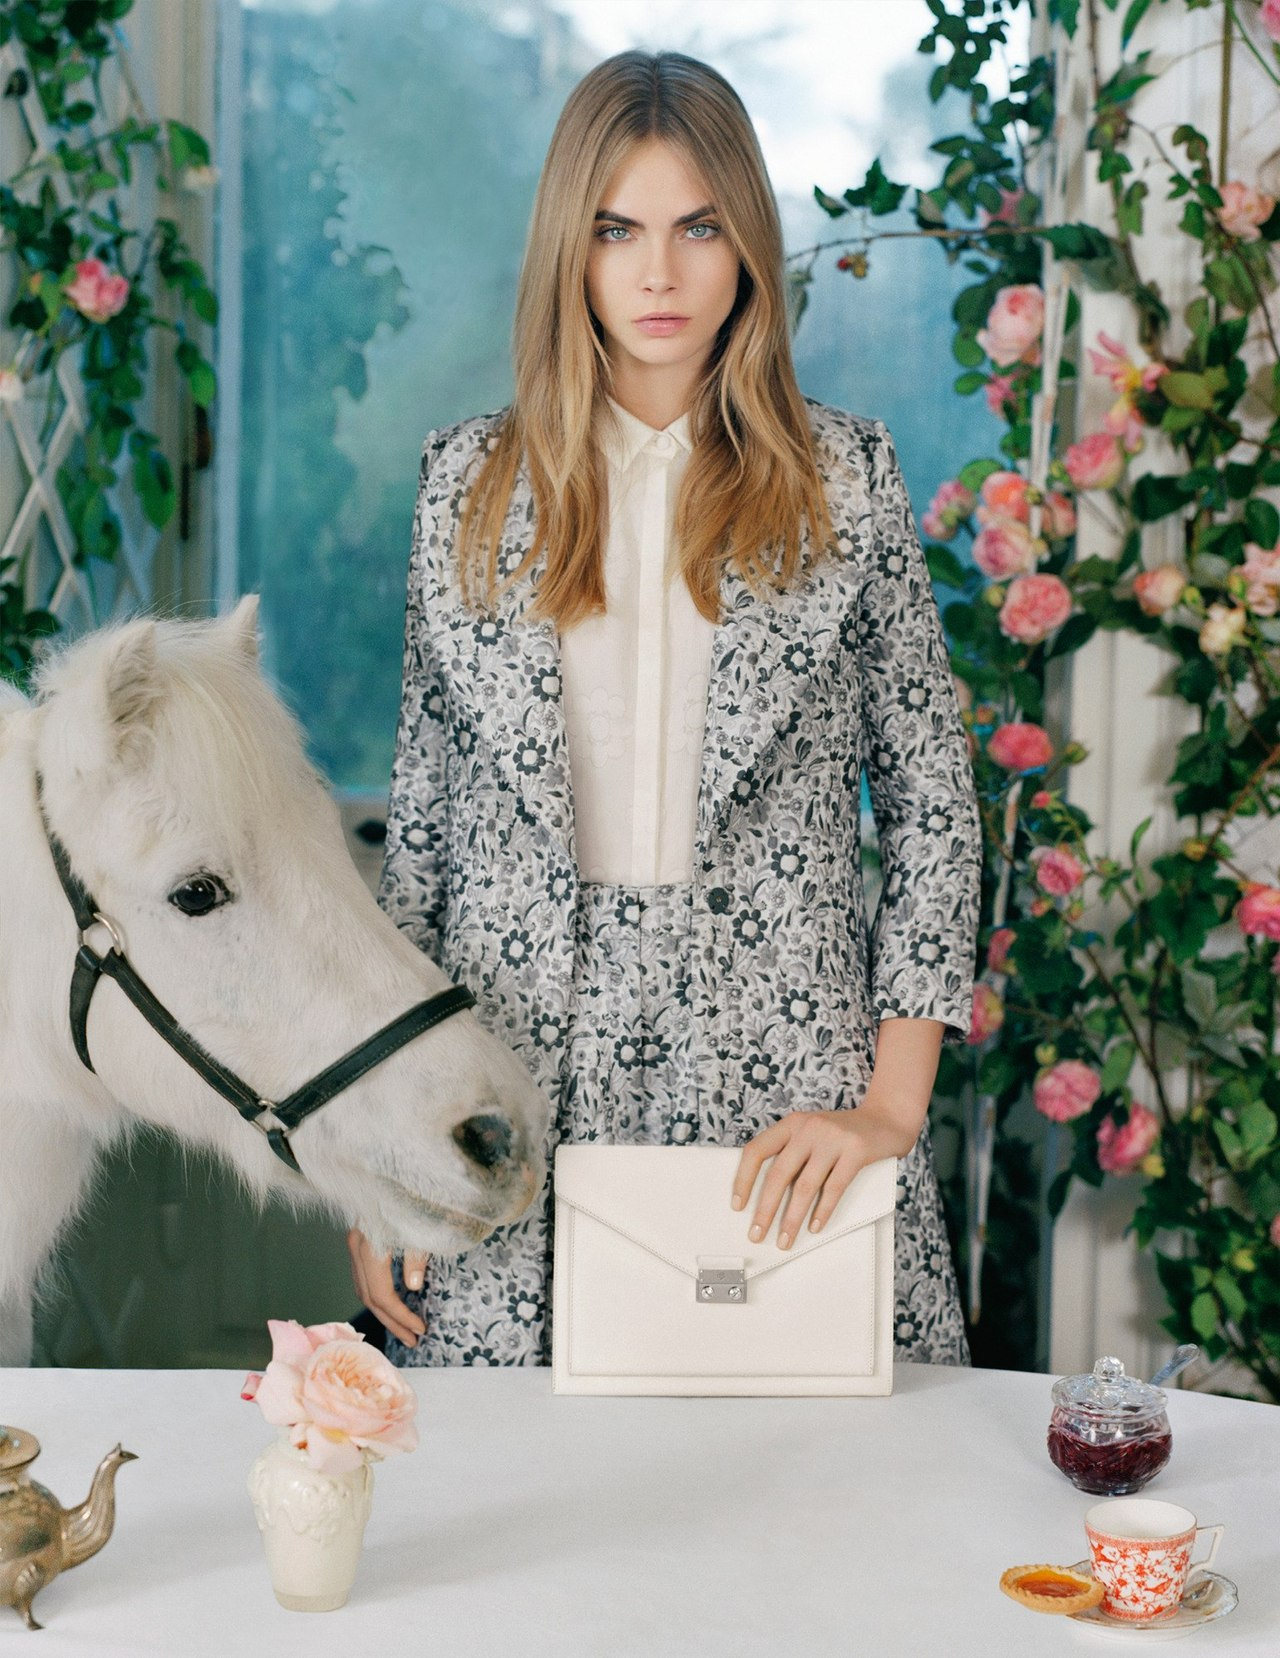 Cara Delevingne Stars in New Mulberry Campaign